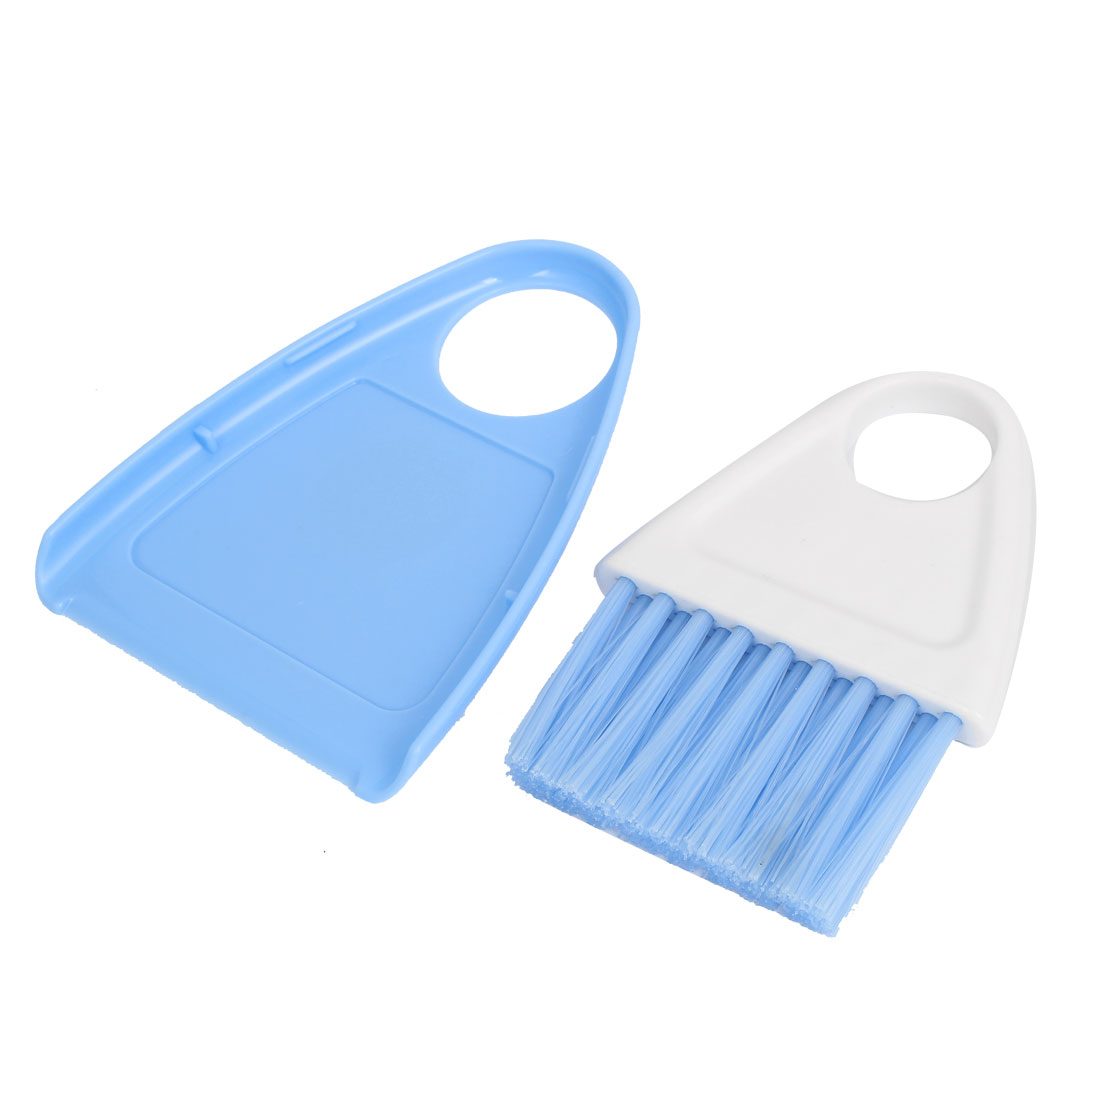 Home Kitchen Dirt Plastic Mini Cleaning Sweeping Brush Dustpan Set Blue